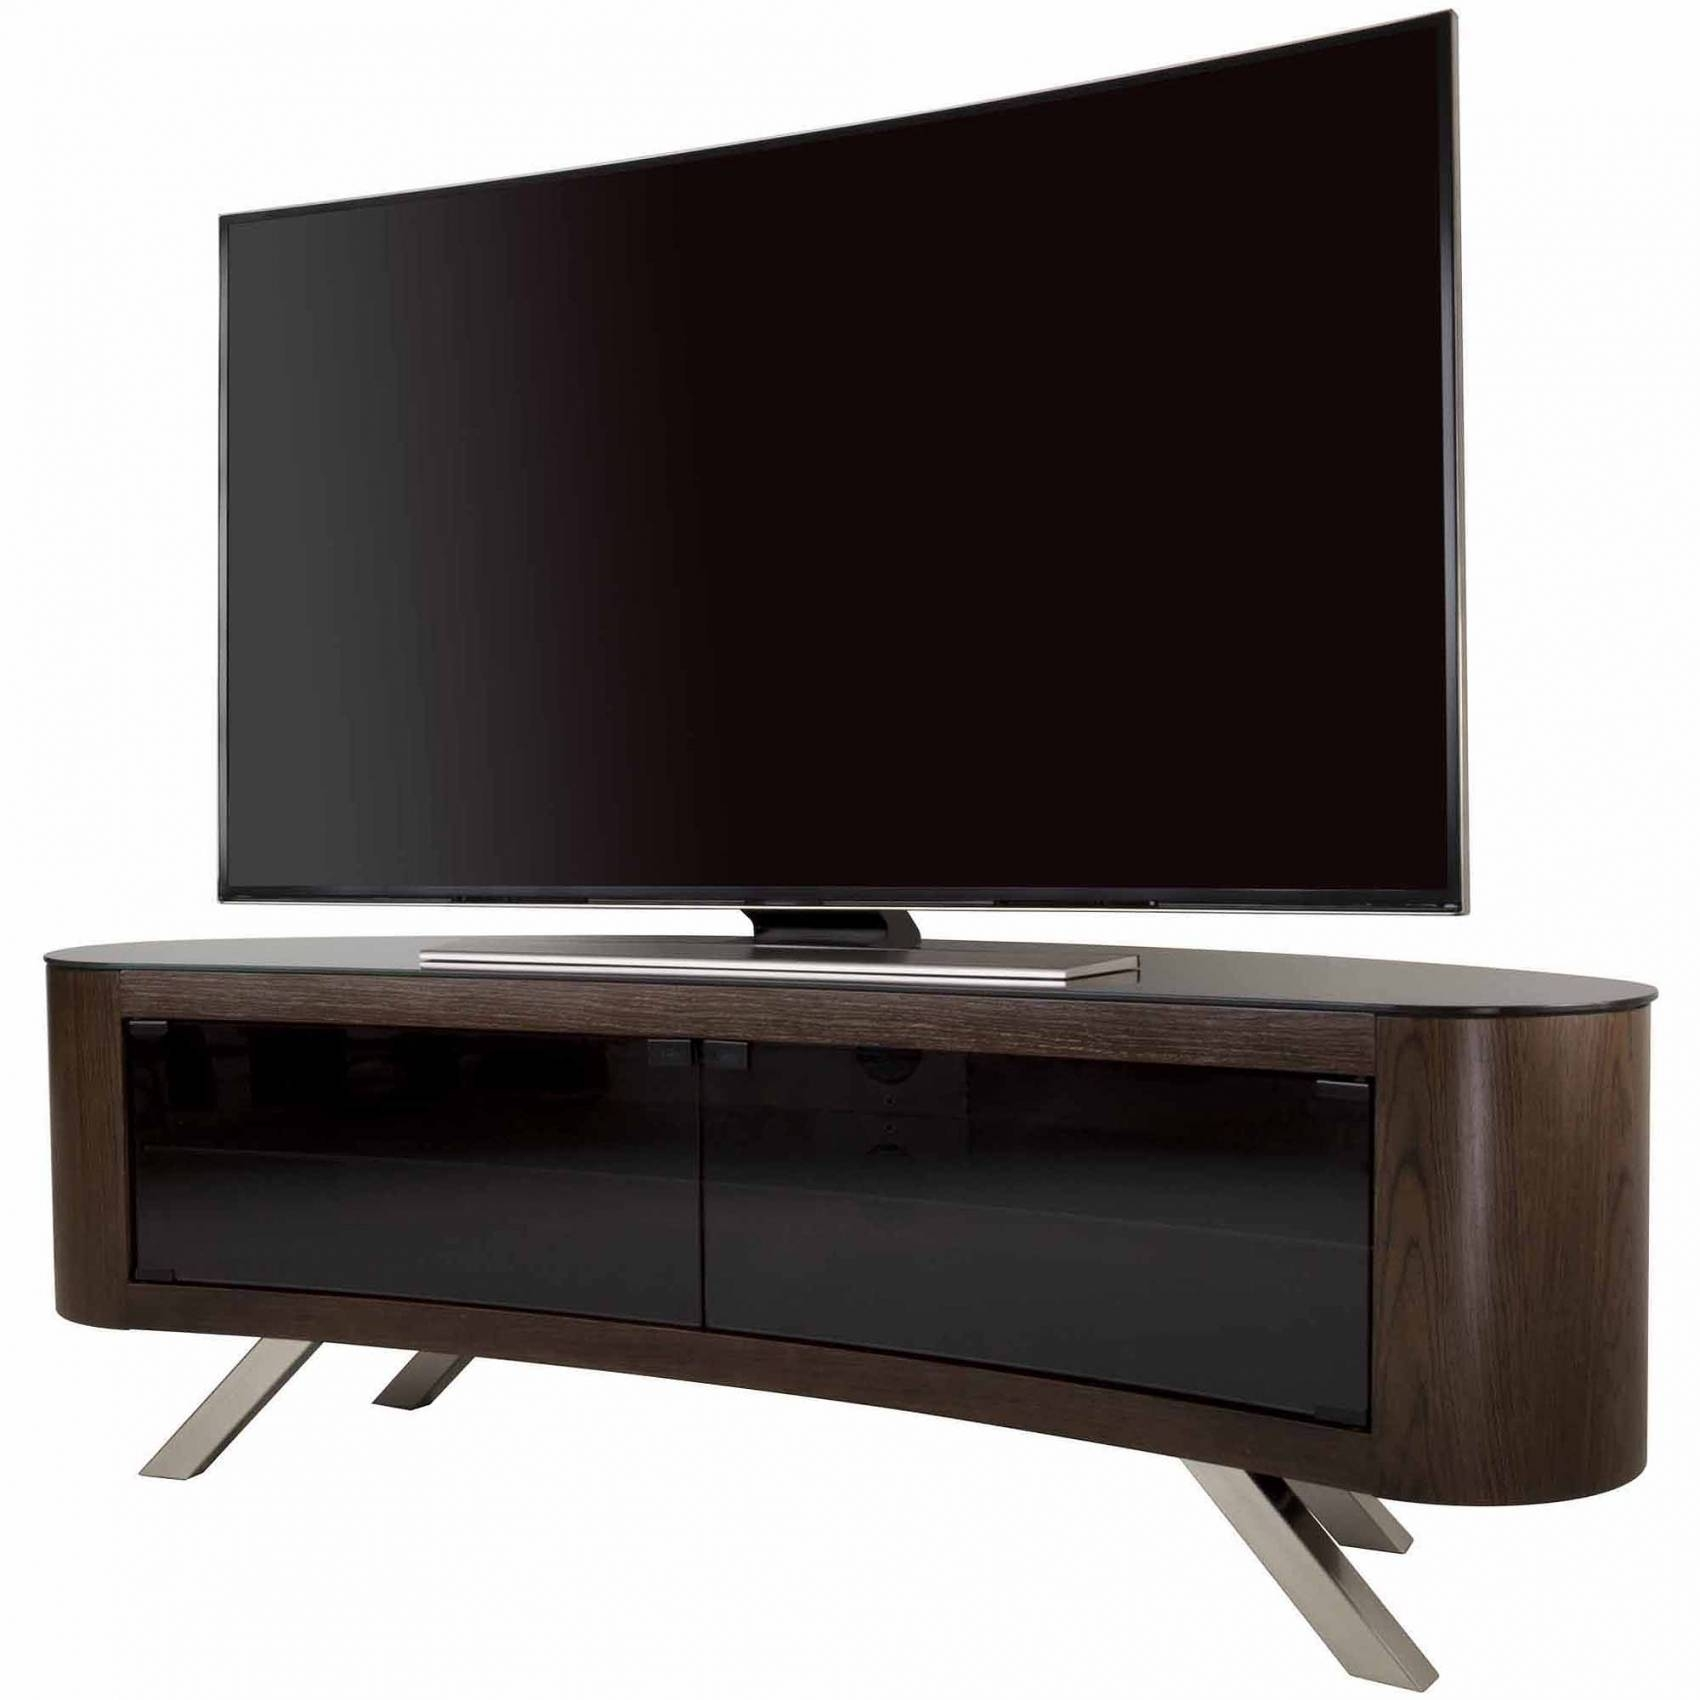 Luxury 70 Inch Tv Stands Inspirational | Vgmnation pertaining to Tv Stands for 70 Inch Tvs (Image 10 of 15)